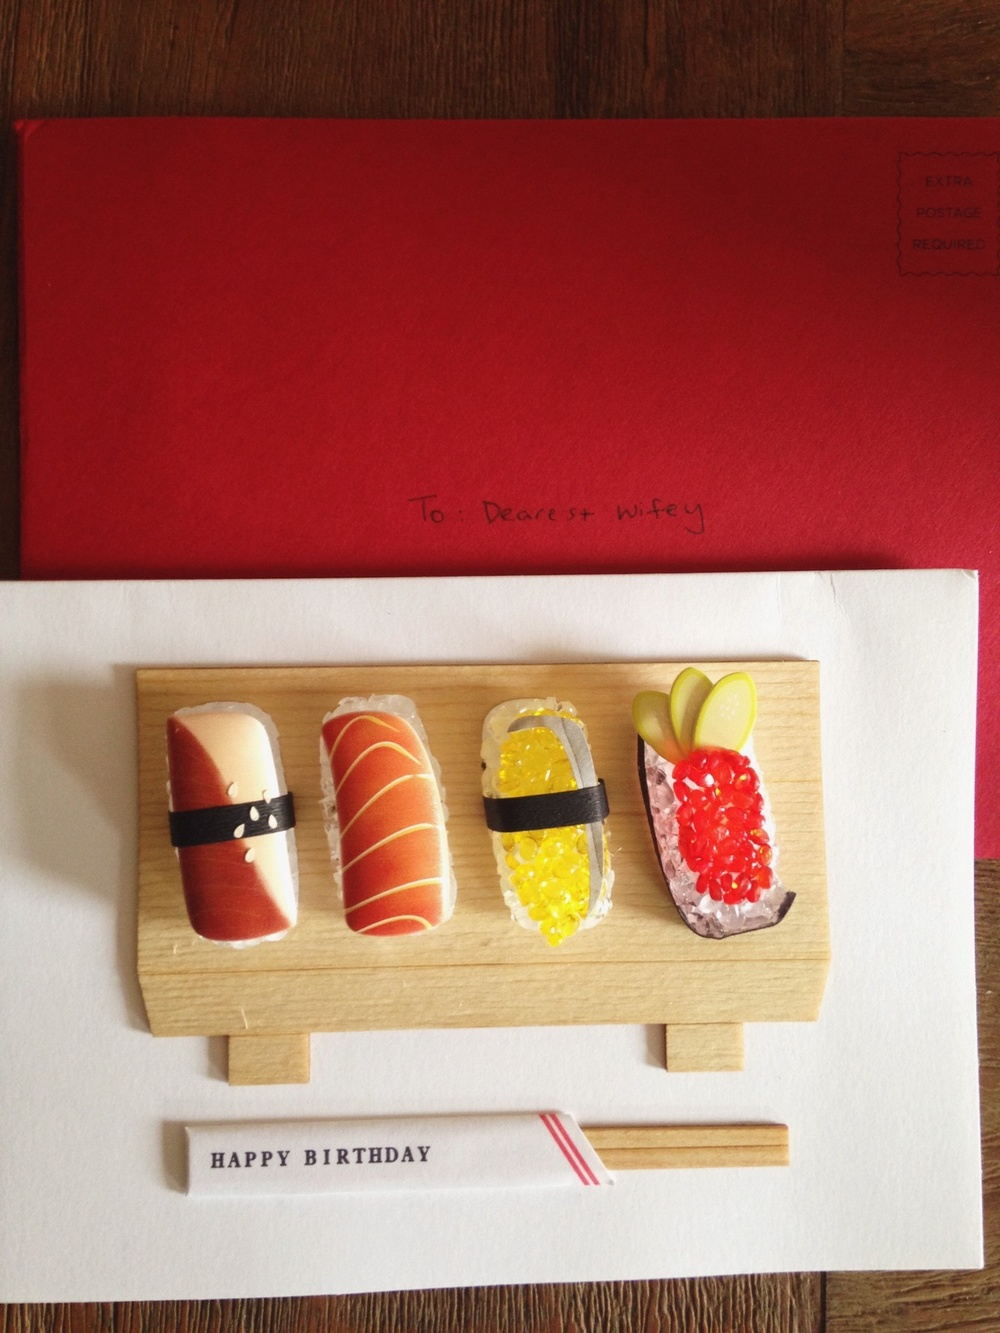 The coolest sushi birthday card. My husband knows me so well.